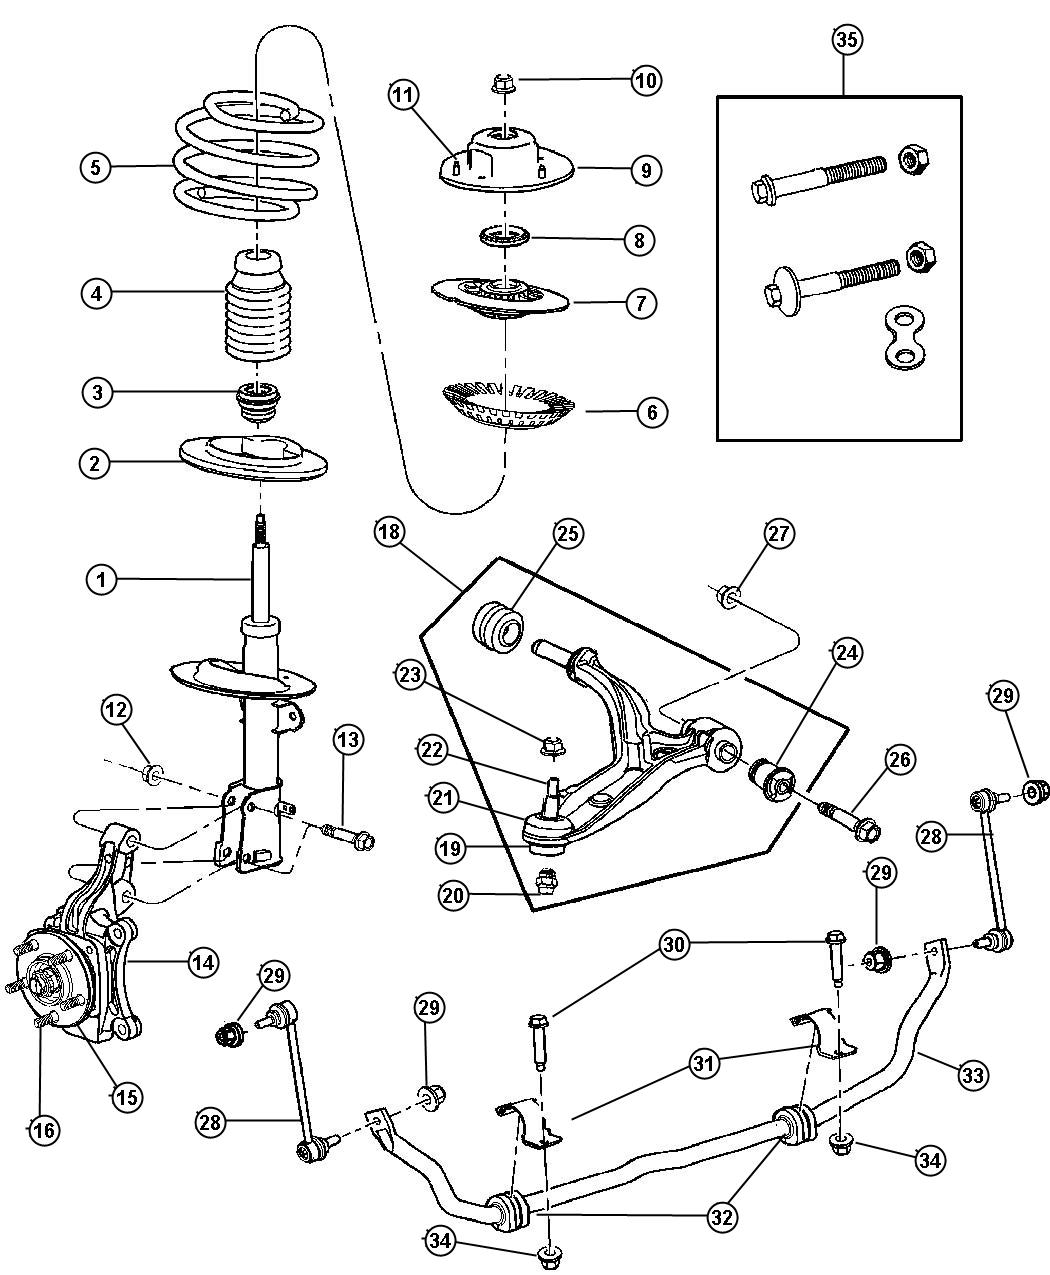 hight resolution of 1996 dodge neon wiring diagram free picture wiring diagram center 1996 dodge neon wiring diagram free